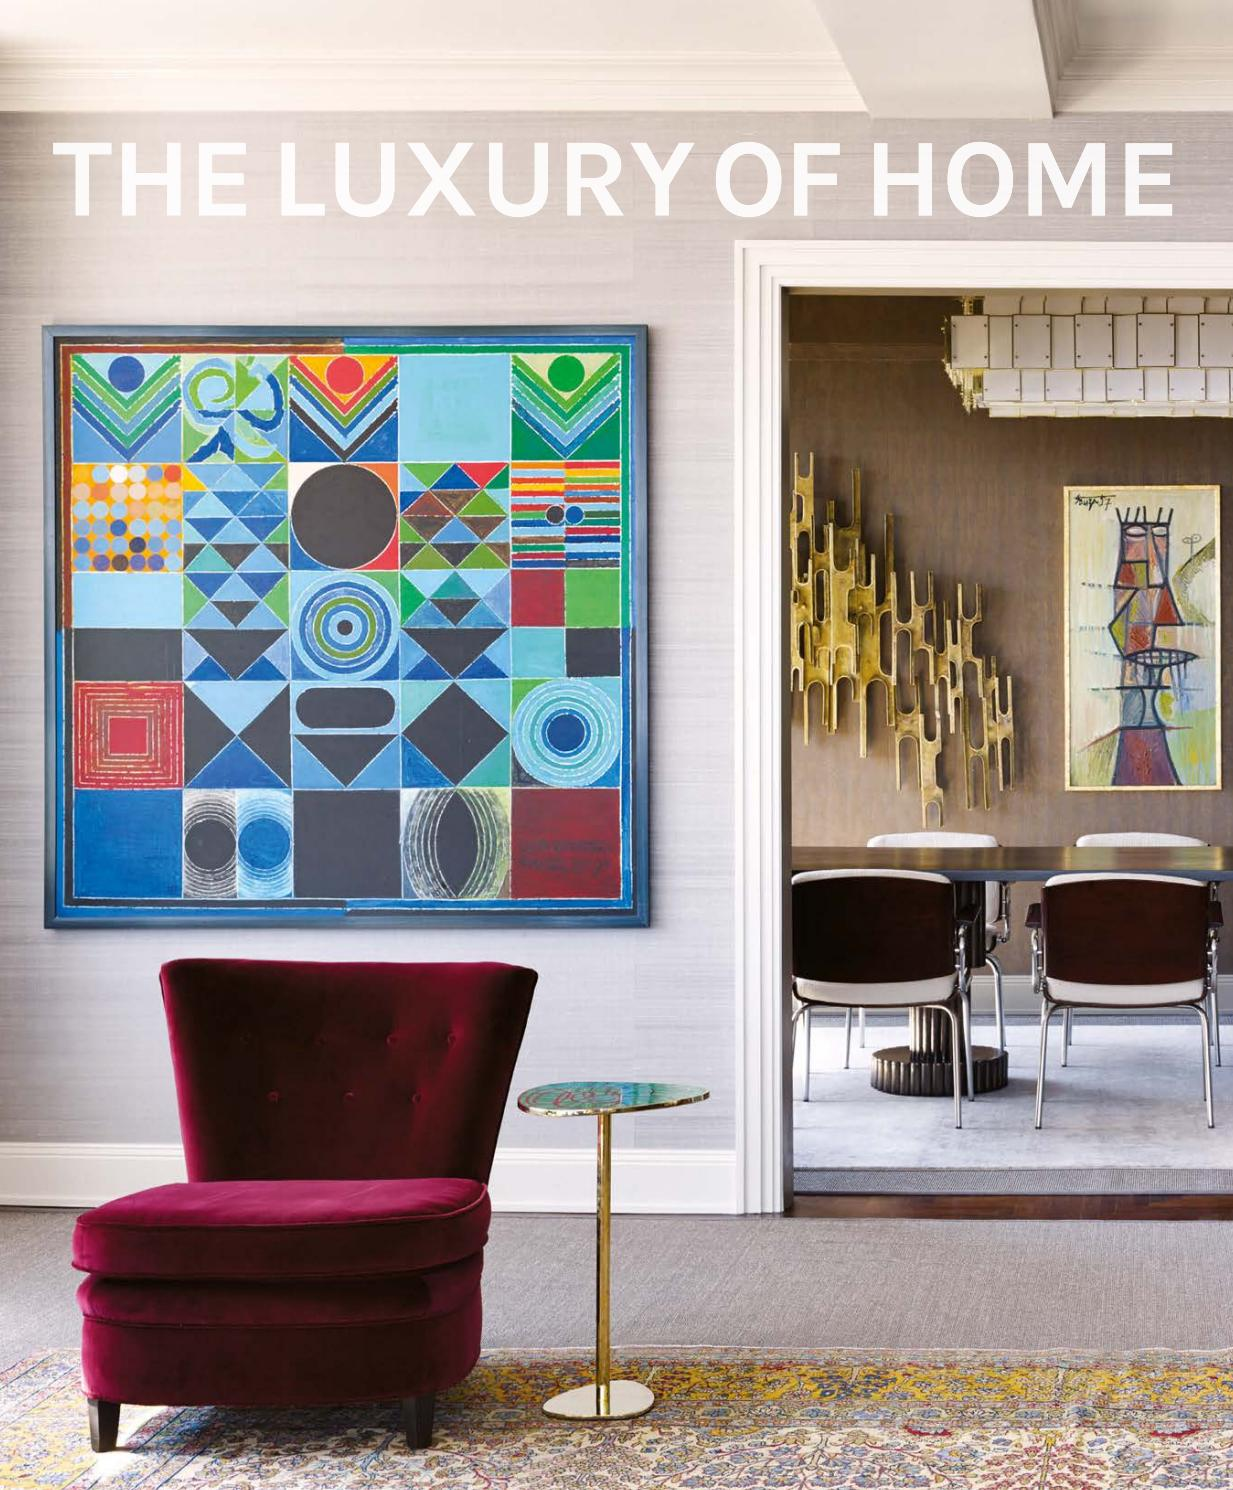 The Luxury of Home 4th Edition